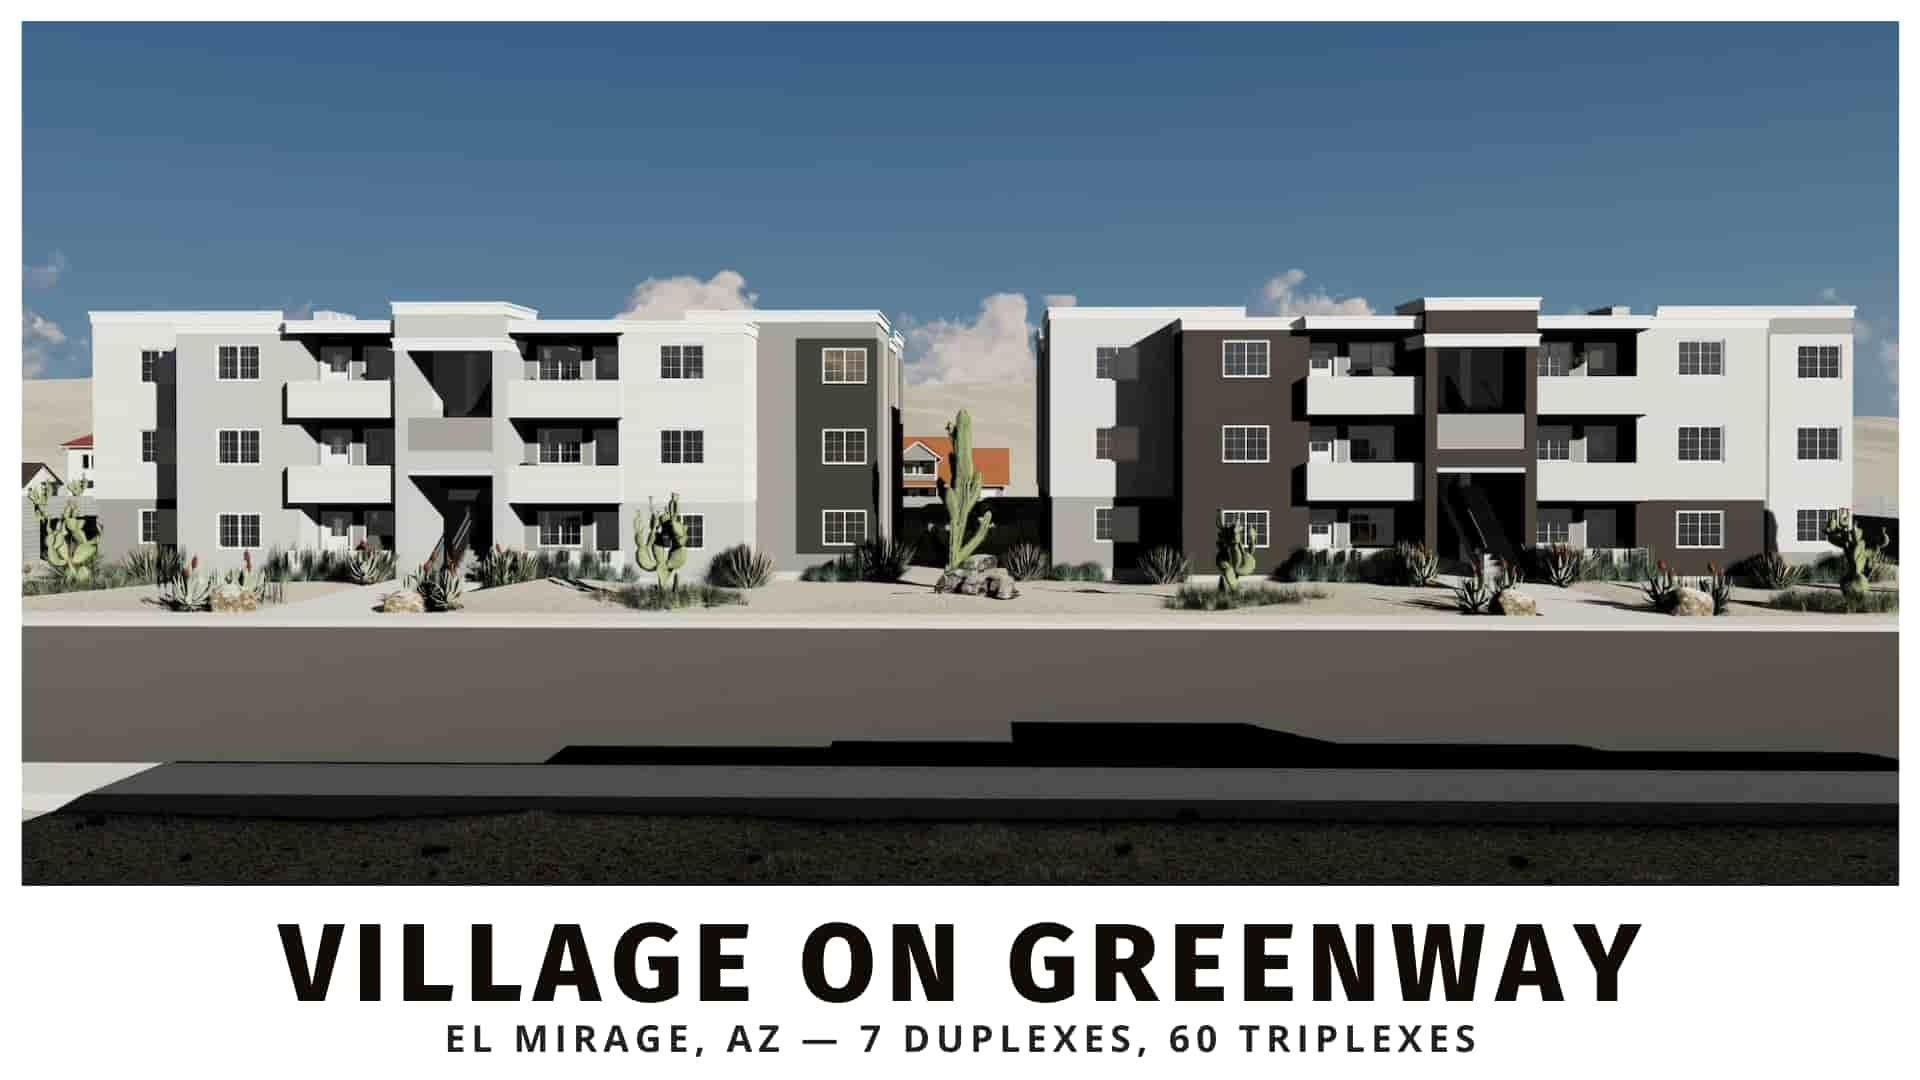 Village on Greenway duplexes and triplexes for sale in maricopa county